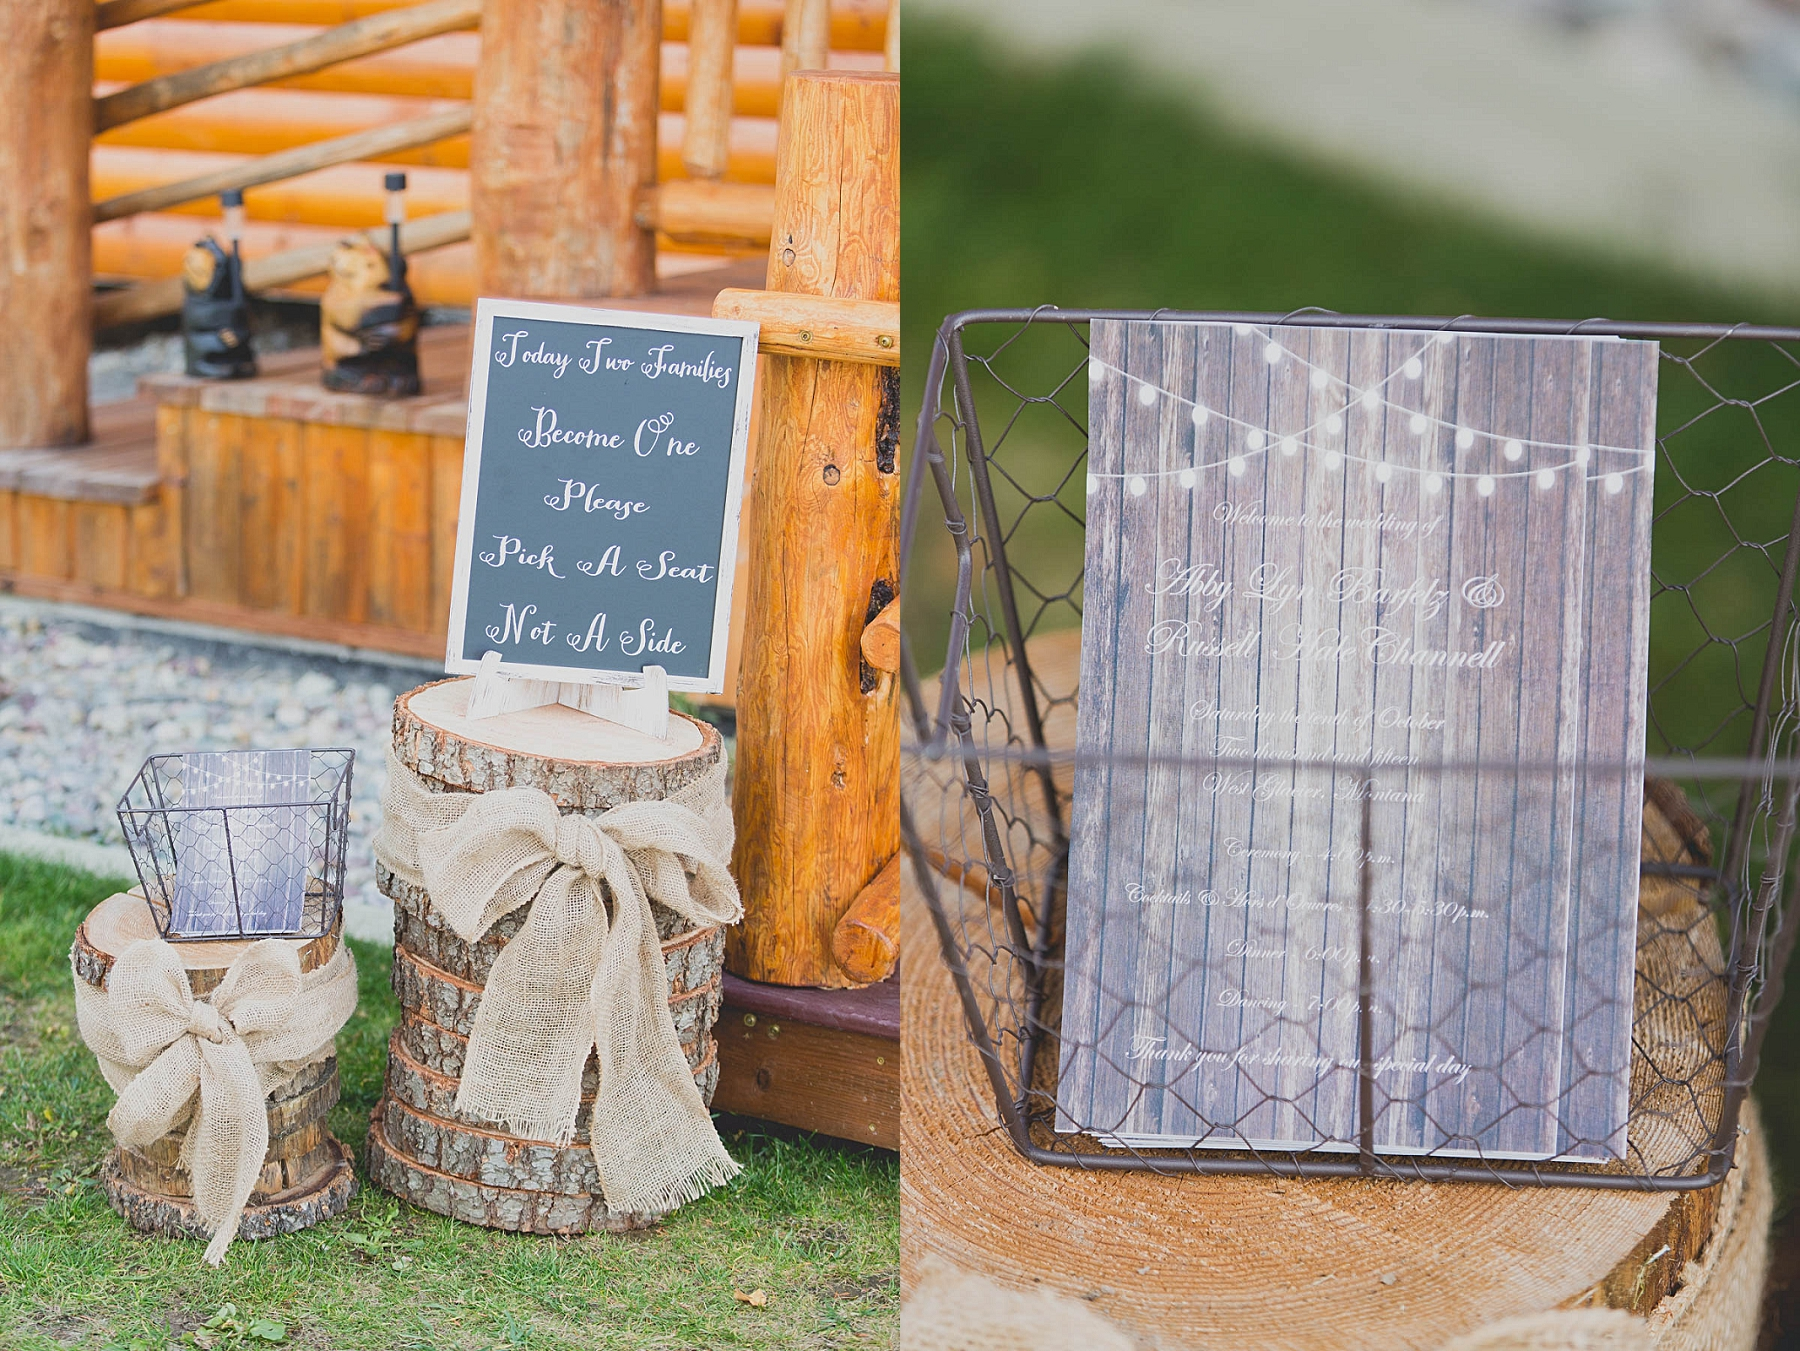 Jennifer_Mooney_photo_glacier_outdoor_center_wedding_montana_fall_elegant_rustic_romantic-69.jpg